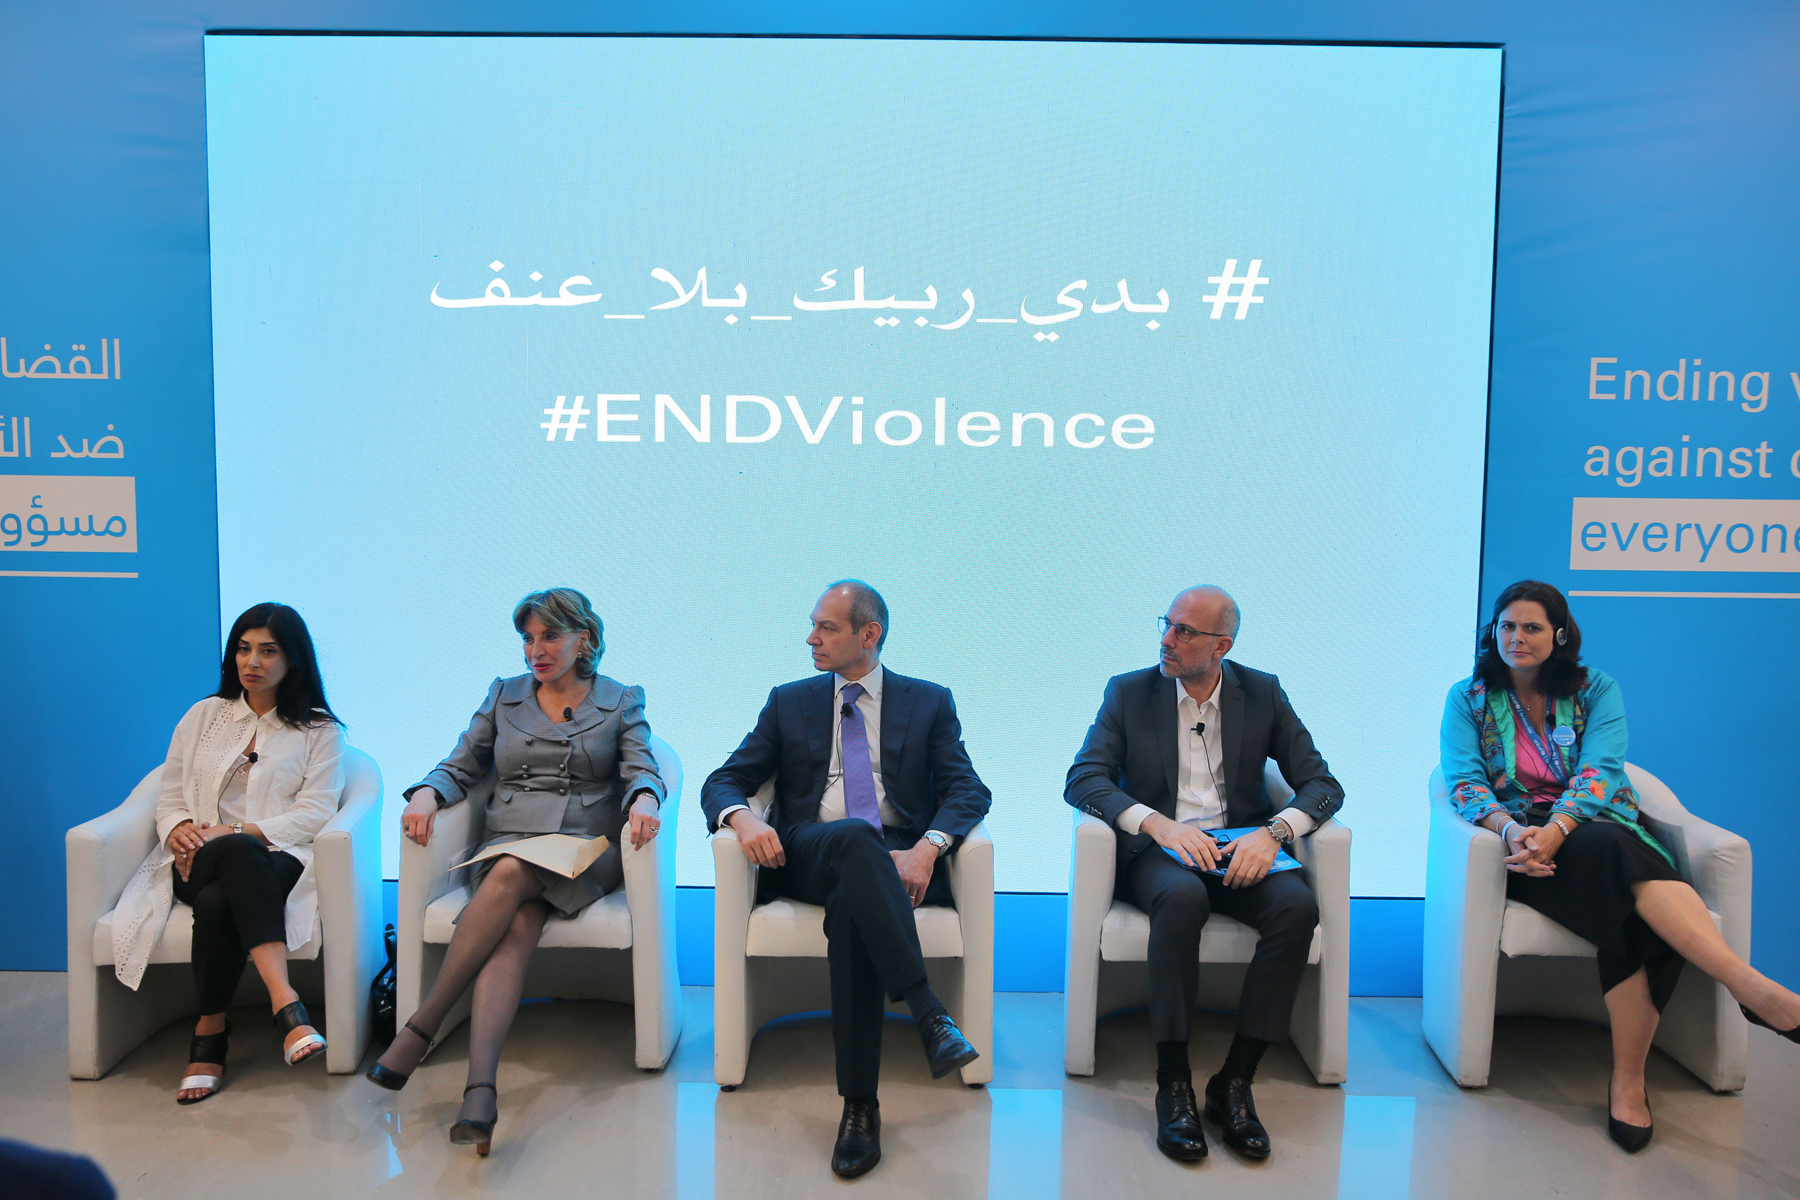 Lebanon / Beirut. 12 June 12, 2018 – UNICEF Lebanon launches a campaign, advocating for positive parenting to replace violent discipline under the tagline #ENDViolence. The launch was attended by Minister of Social Affairs, Pierre Abou Assi, UNICEF representative in Lebanon, Tanya Chapuisat, child protection sector representatives, partners and key donors including the Delegation of the European Union and the embassies of the United Kingdom, Canada and Denmark.  An open panel discussion was attended by Pamela Zougheib, Director of Mother and Child Department at the Ministry of Health representing the minister, Director General of Ministry of Justice Judge Maysam Noueiri, General Director of Education in the Ministry of Education and Higher Education Mr. Fadi Yarak, Director General of the Ministry of Social Affairs, Judge Abdallah Ahmad, UNICEF Deputy Representative Violet Speek Warney, and moderated by journalist Giselle Khoury. Photo Dar al Mussawir.